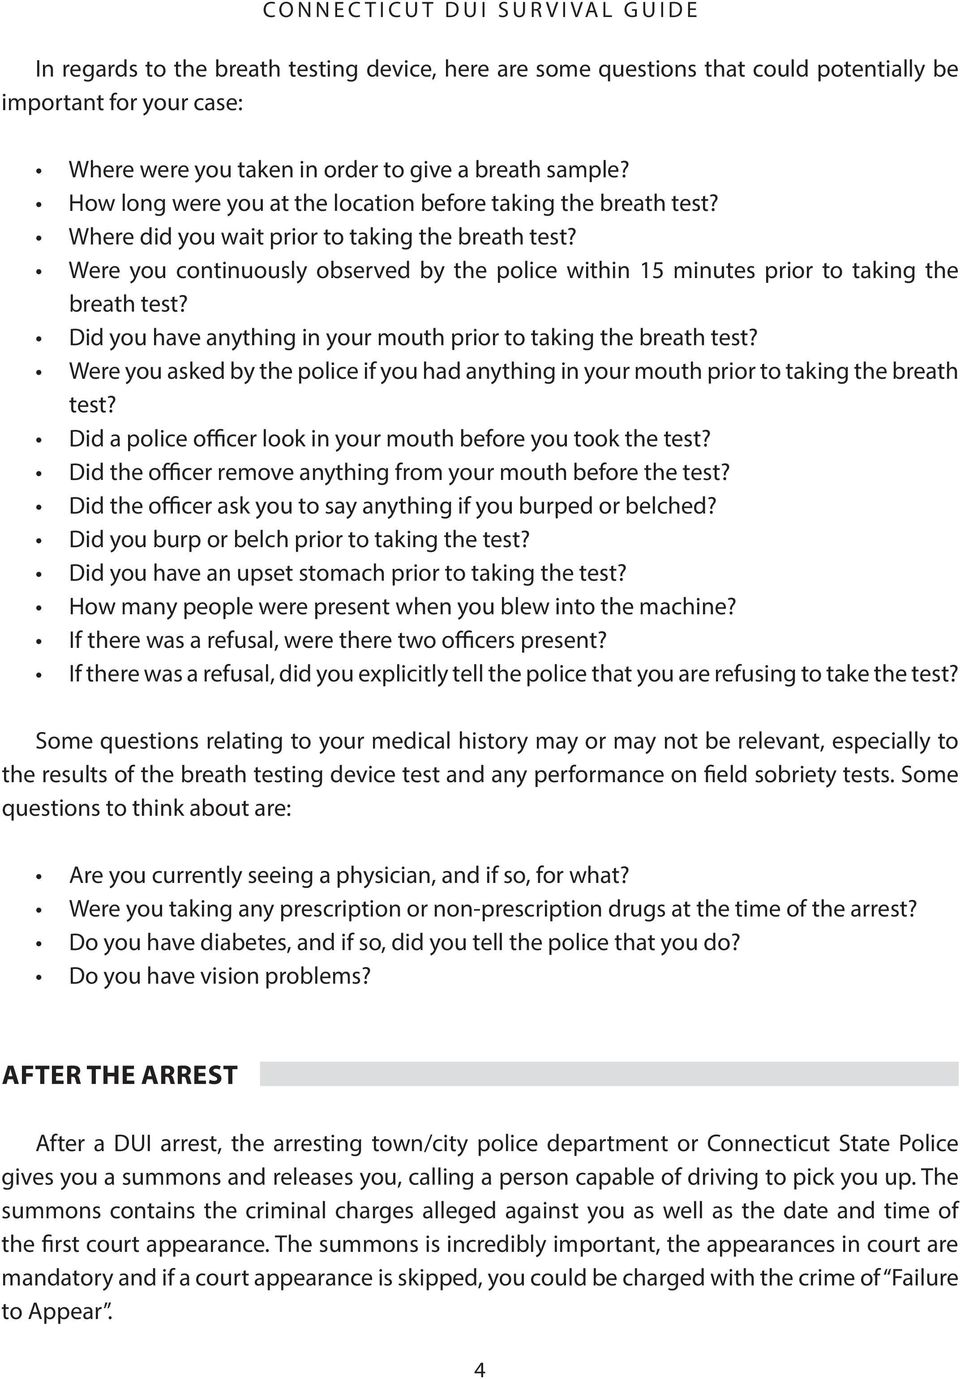 test? Some questions relating to your medical history may or may not be relevant, especially to the results of the breath testing device test and any performance on field sobriety tests.